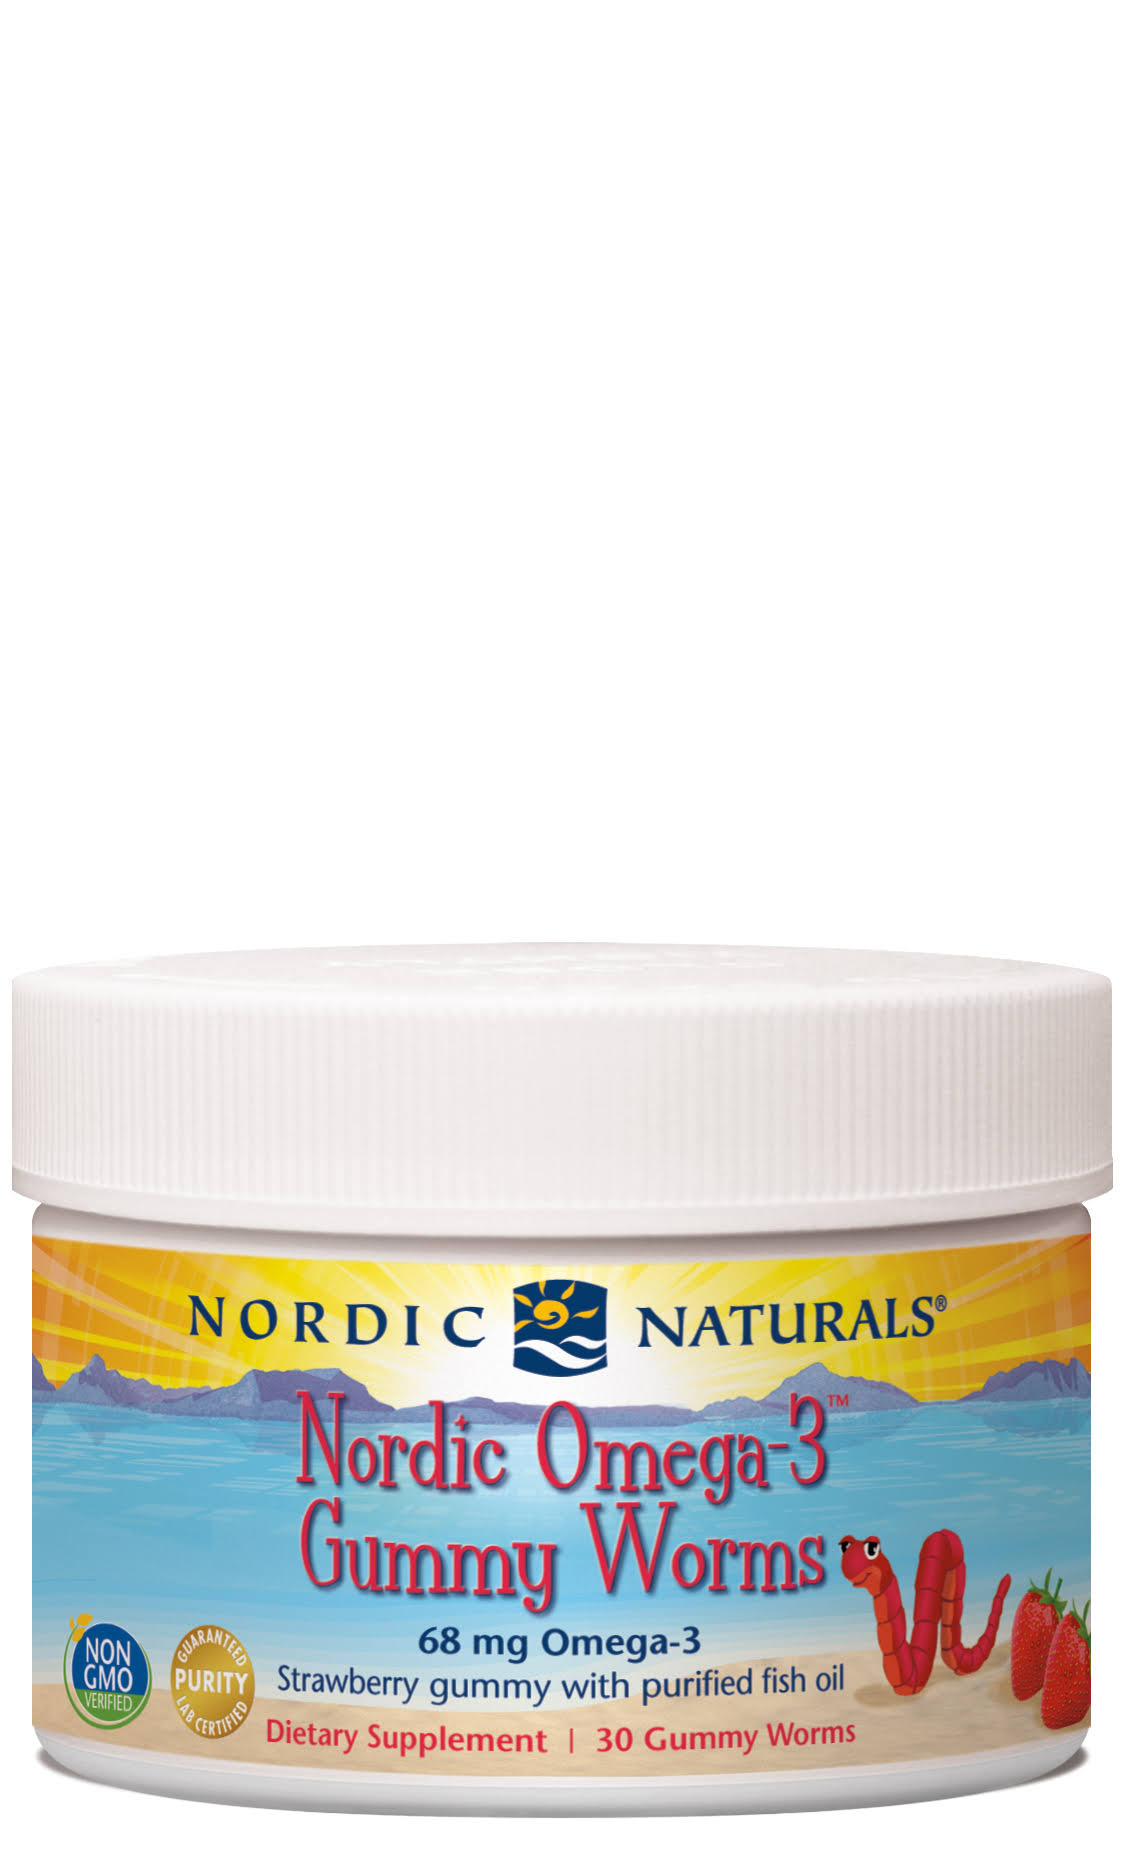 Nordic Naturals Omega-3 Gummy Worms Dietary Supplement - Strawberry, 30ct